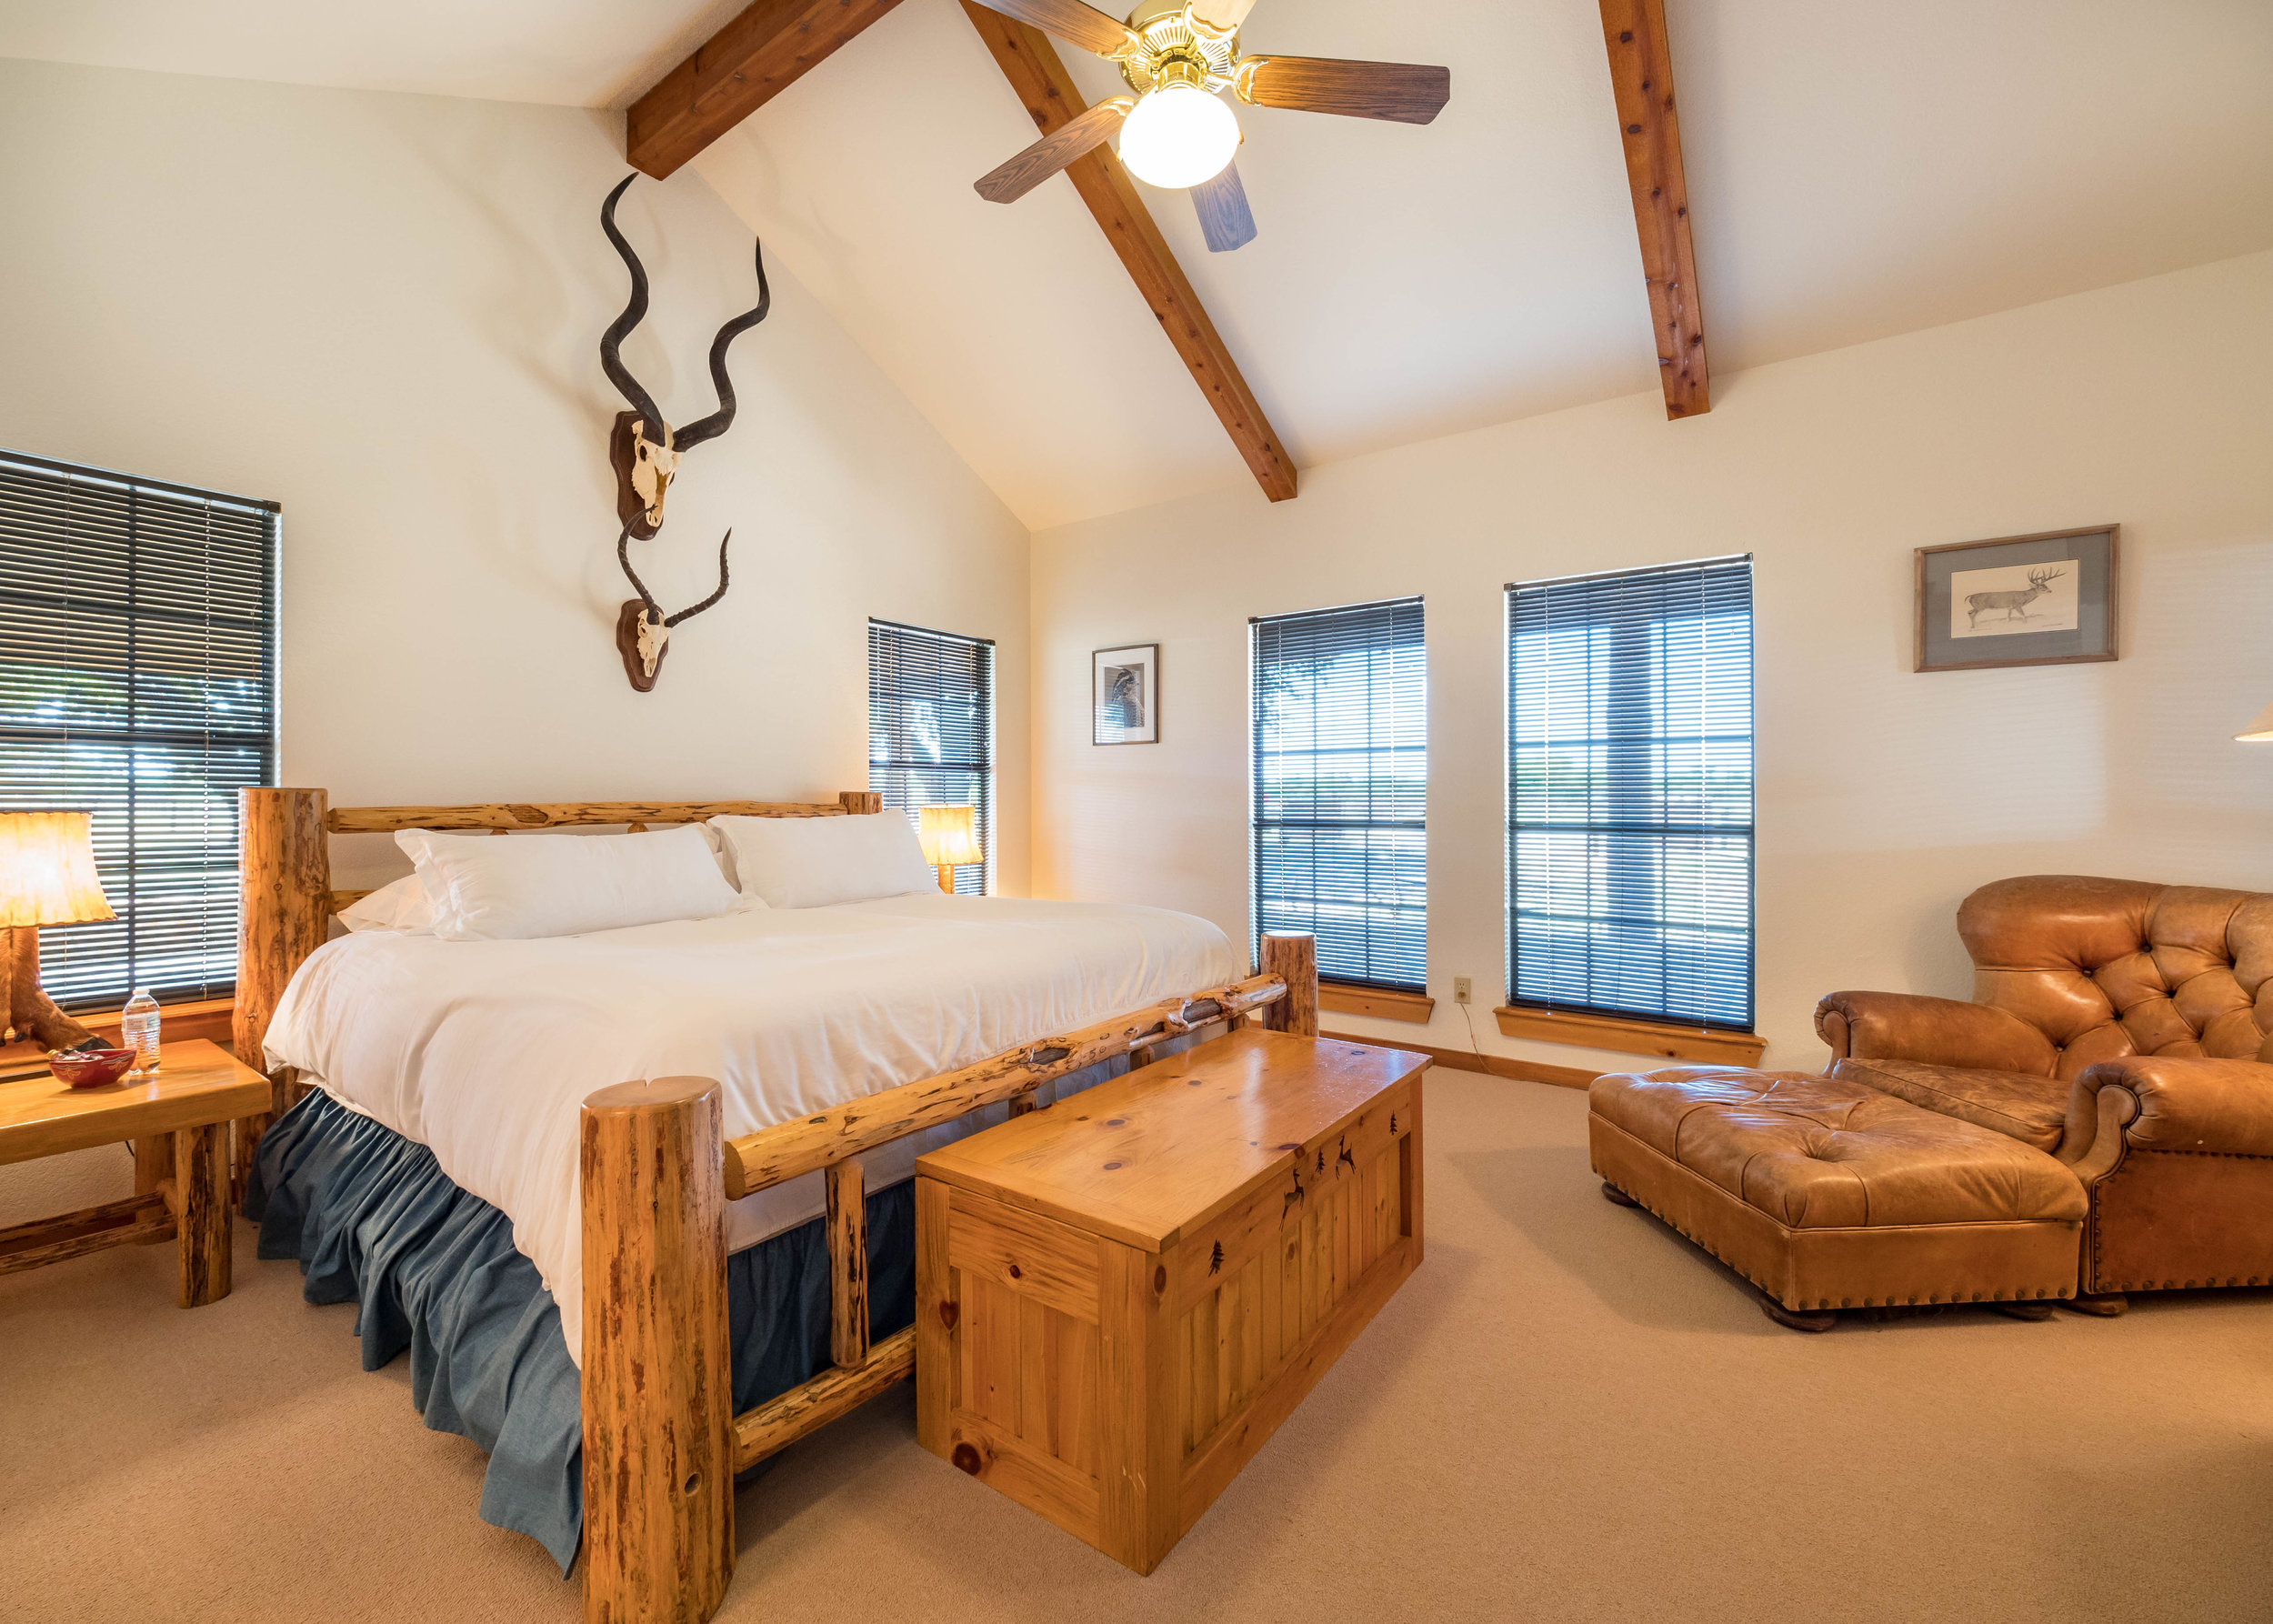 Suites at The Lodge - 3 BedroomsBedroom #1 - King Bed with Ensuite Bathroom  Bedroom #2 - 1 King Bed & 1 Queen Bed with Ensuite BathroomBedroom #3 - 2 Queen Beds with Ensuite BathroomAll bedrooms are equipped with a flatscreen tv, bottles of water, and fresh towels daily